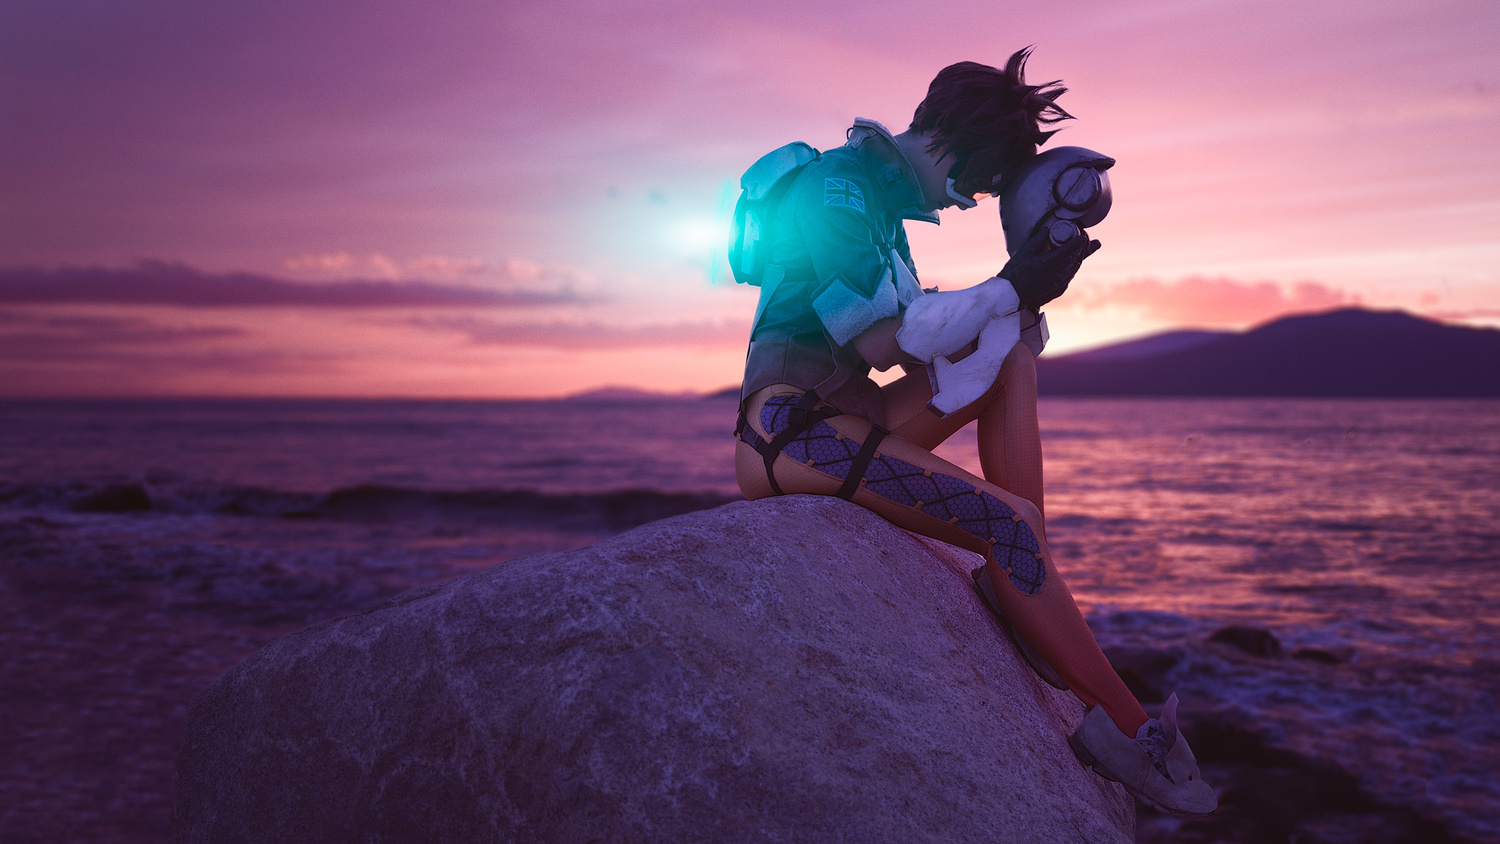 Five Tips to Make Your Next Sunset Photoshoot Amazing Fstoppers